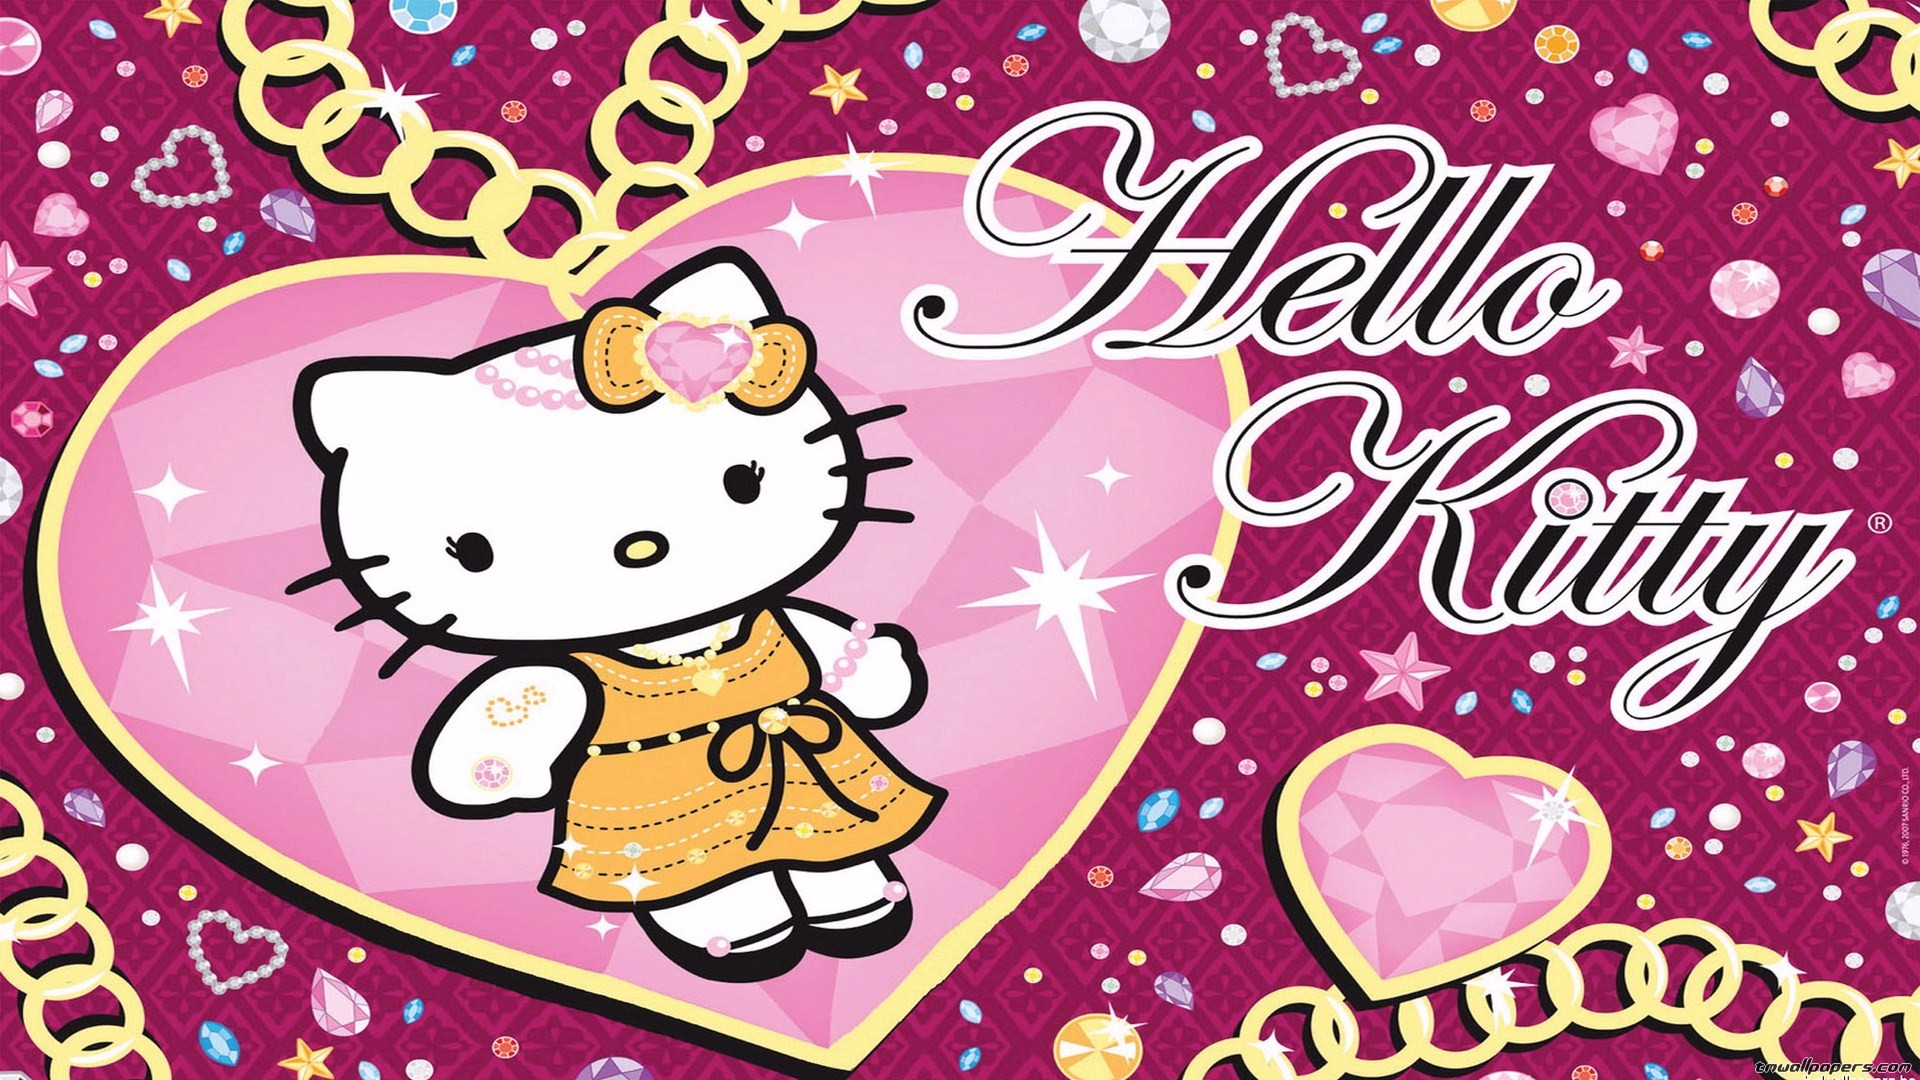 Wallpaper hello kitty 1920x1080 hello kitty wallpapers pack download purple voltagebd Image collections